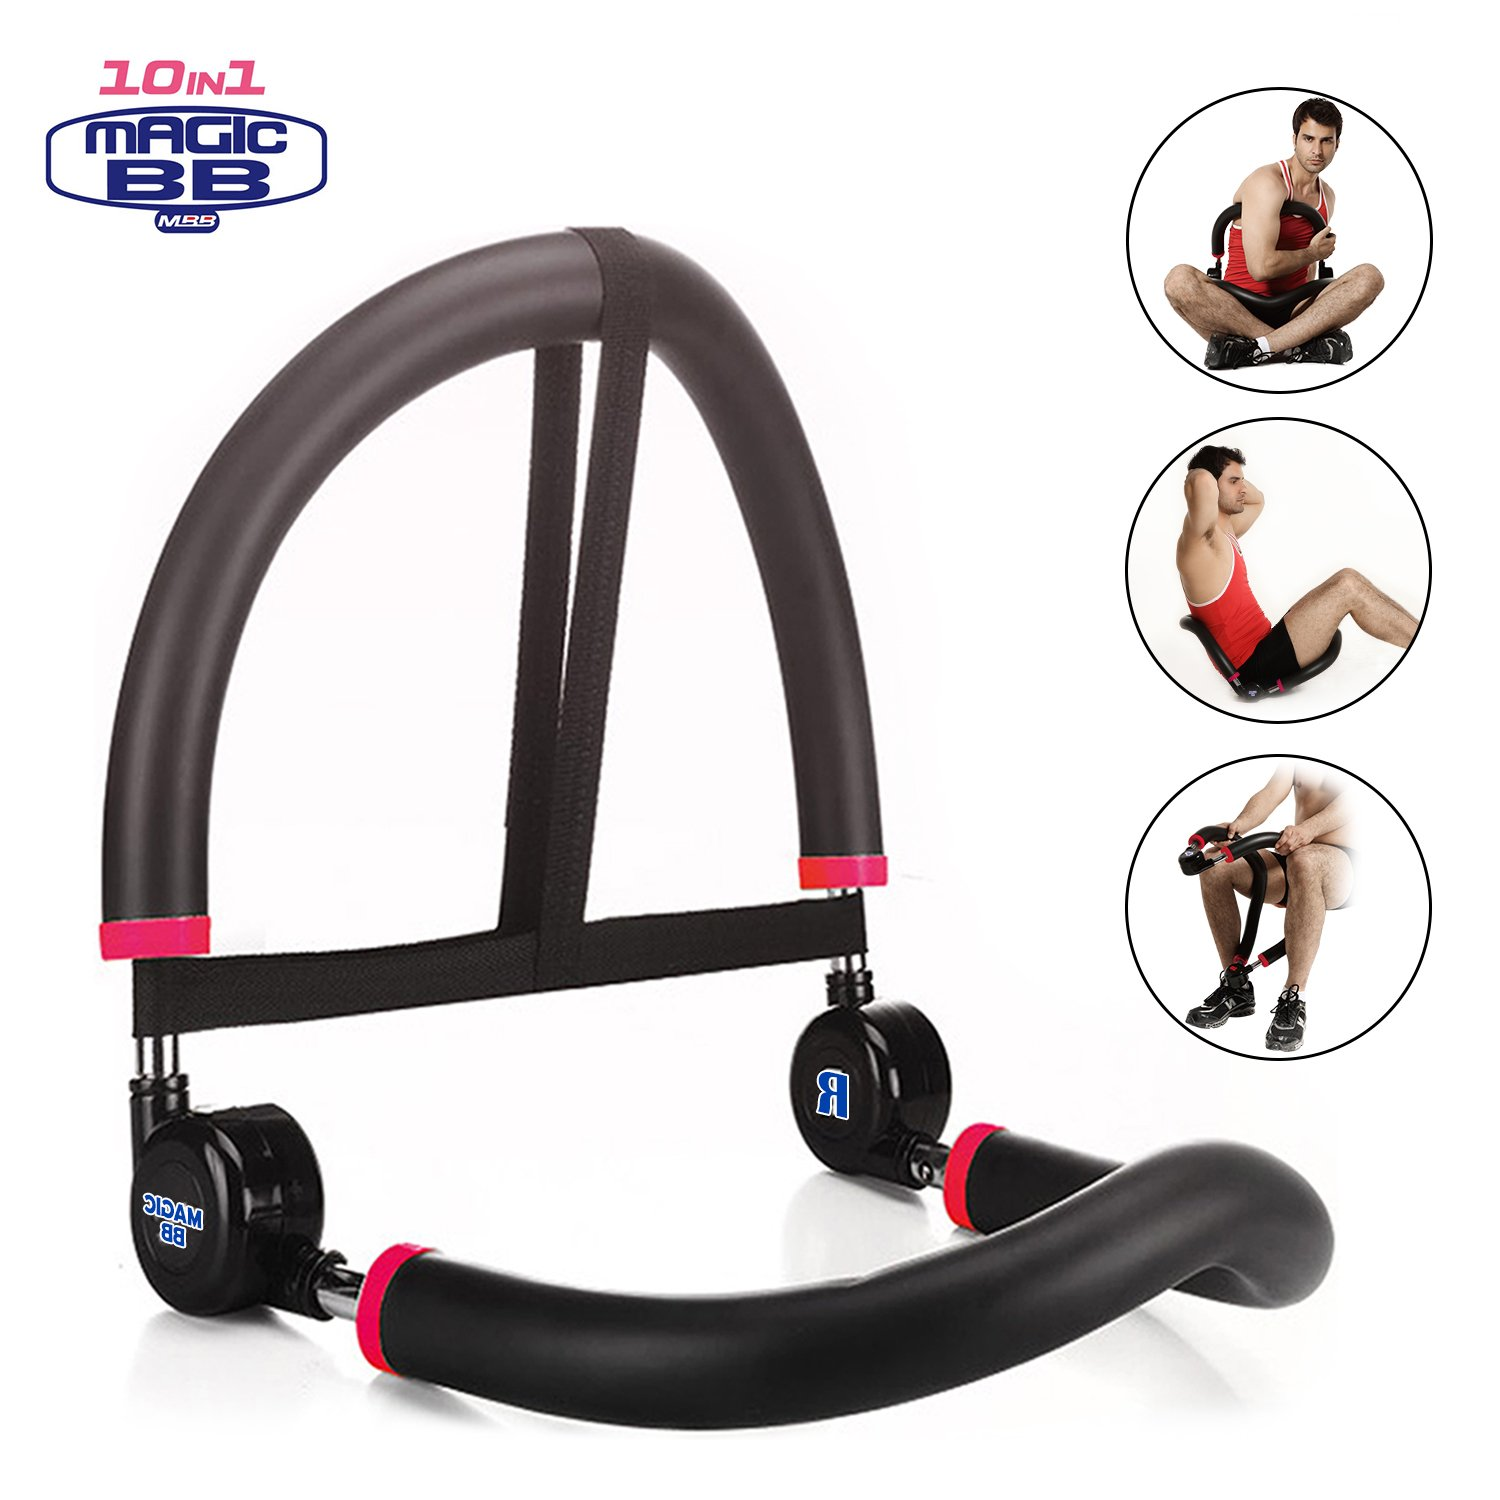 SYOSIN Abdominal Machine for Full Range of Motion Ab & Core Workouts, Home Fitness Equipment for Beginners by SYOSIN